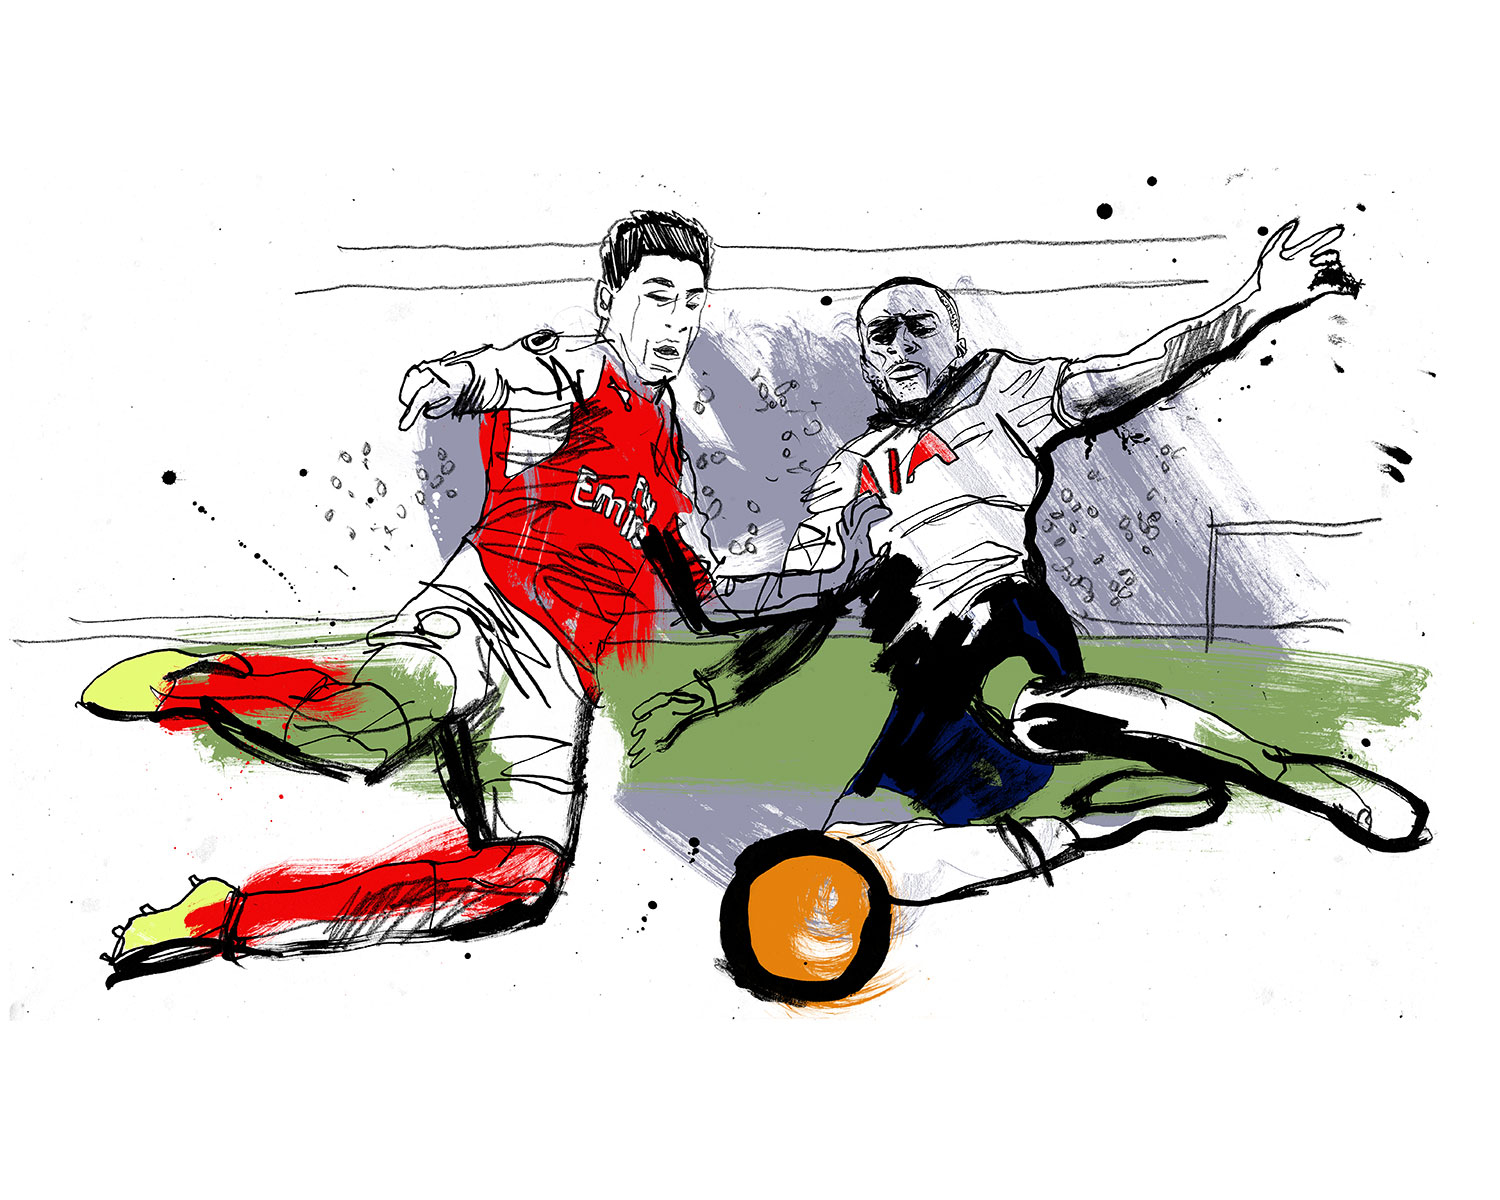 Premier League illustration for animated TV trailer, Arsenal v Spurs, hand drawing on paper, ink, pencil, artist, illustrator Ben Tallon